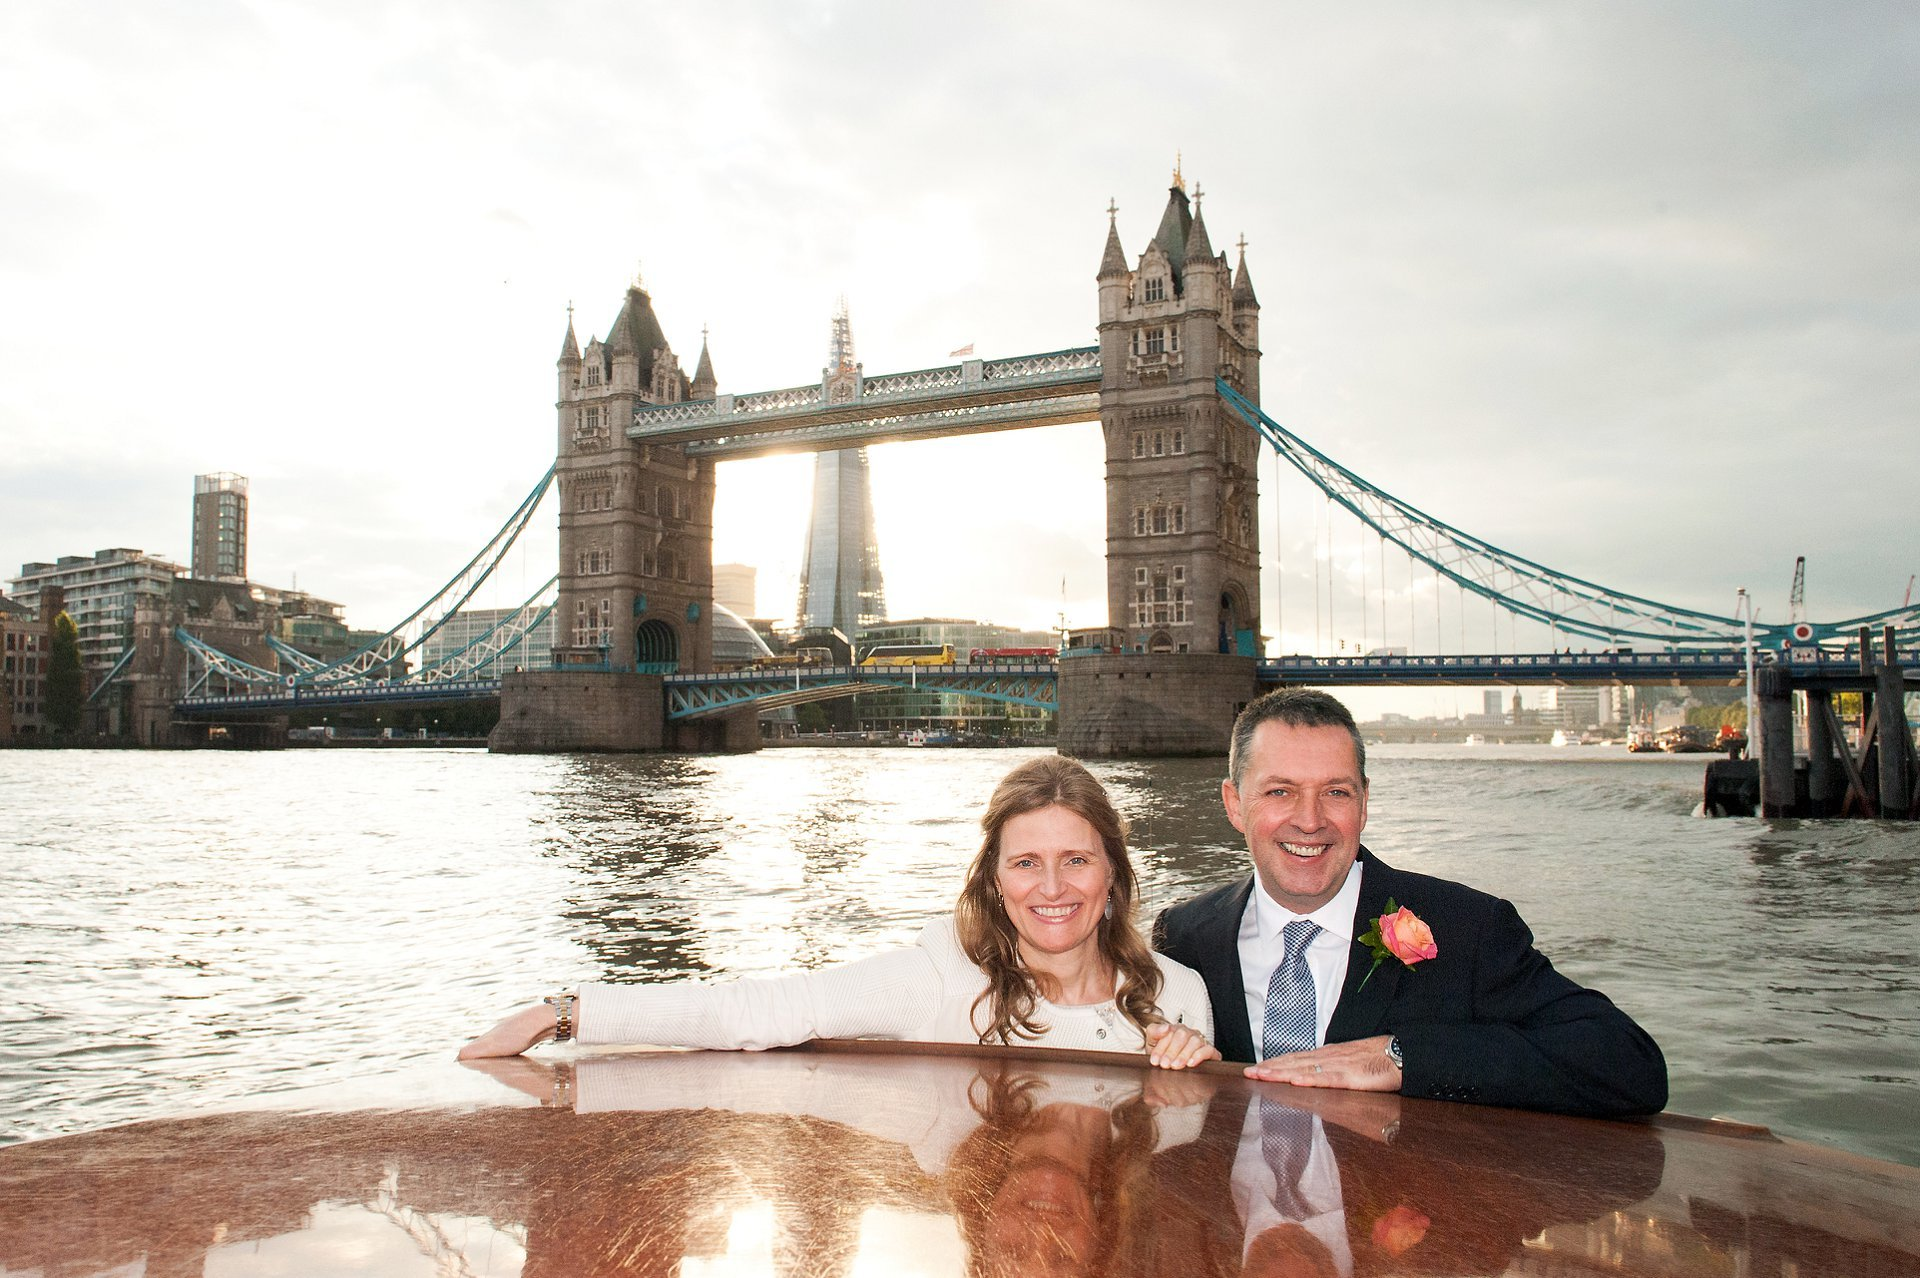 chelsea-register-office-wedding-thames-limo-water-transport-from-venue-to-westminster-boating-base-wedding-venue-on-river-thames-emma-duggan